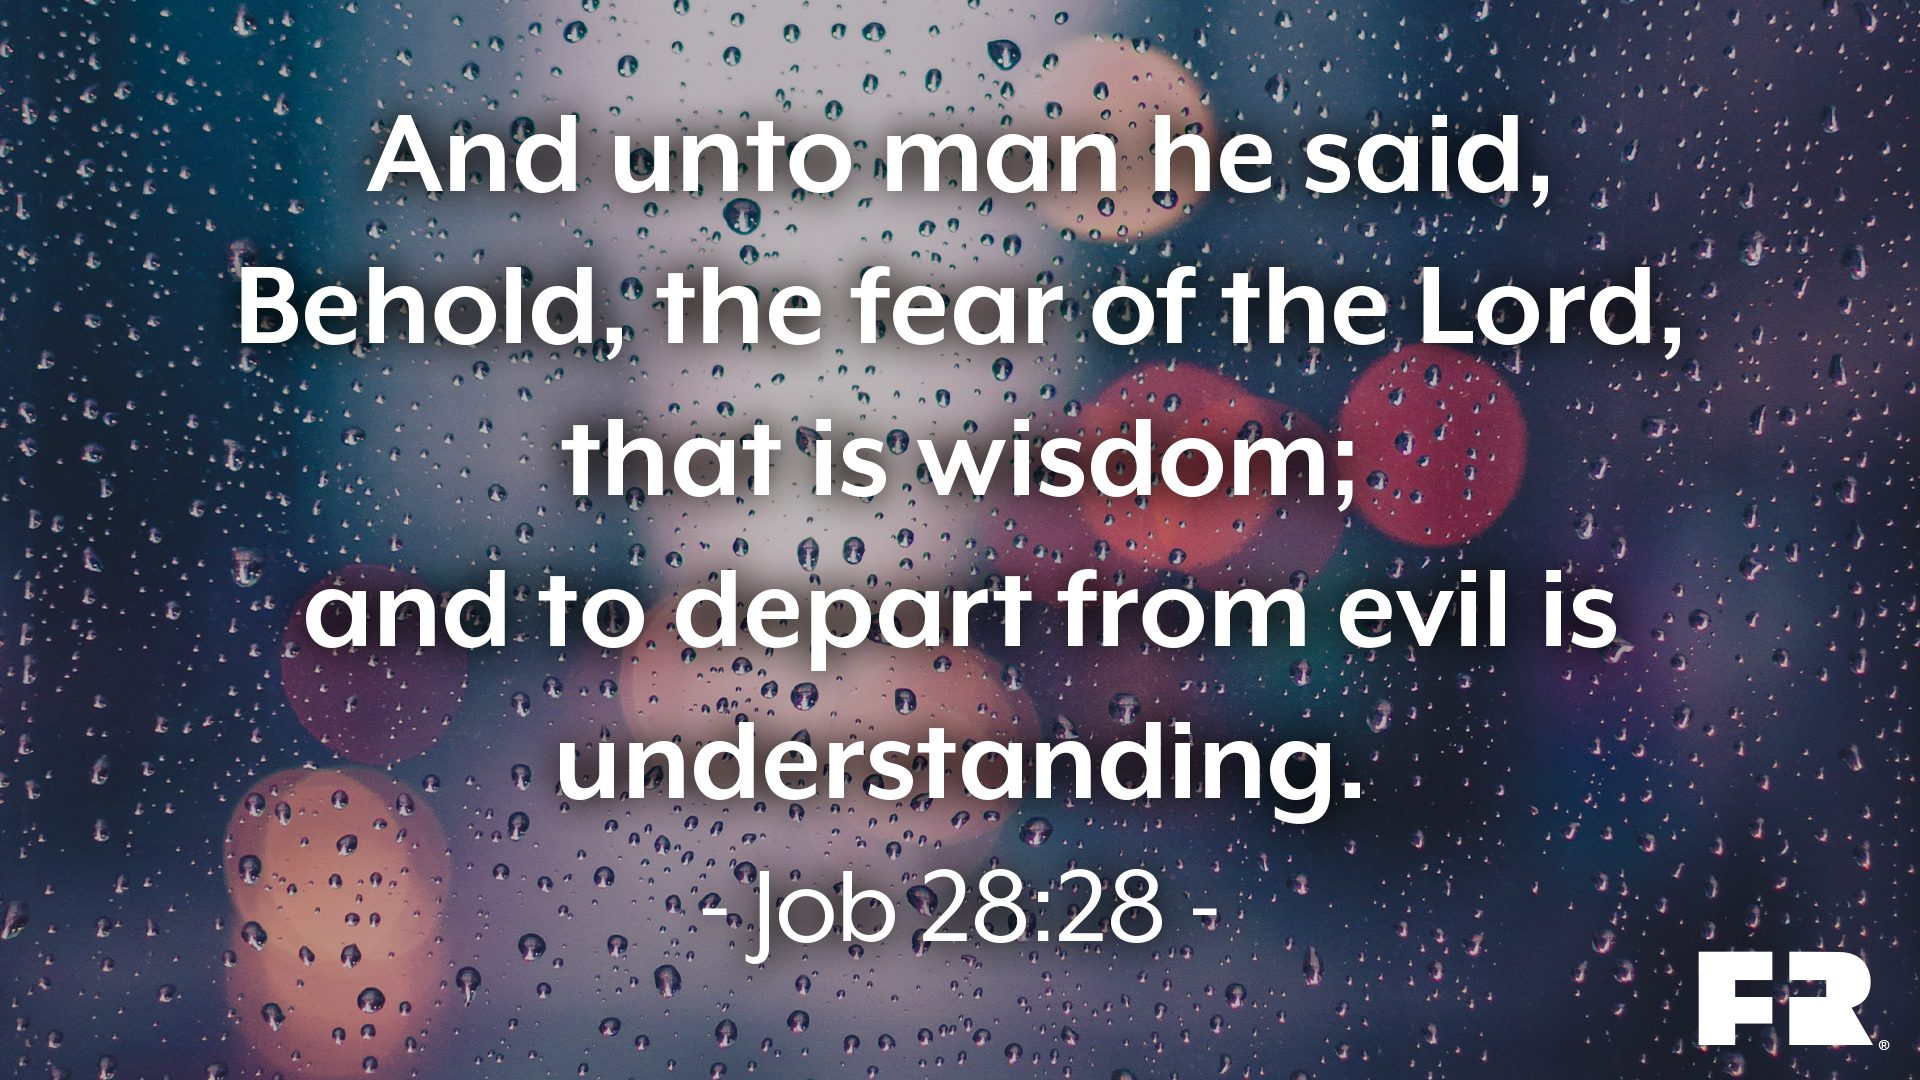 """And unto man he said, Behold, the fear of the Lord, that is wisdom; and to depart from evil is understanding."""